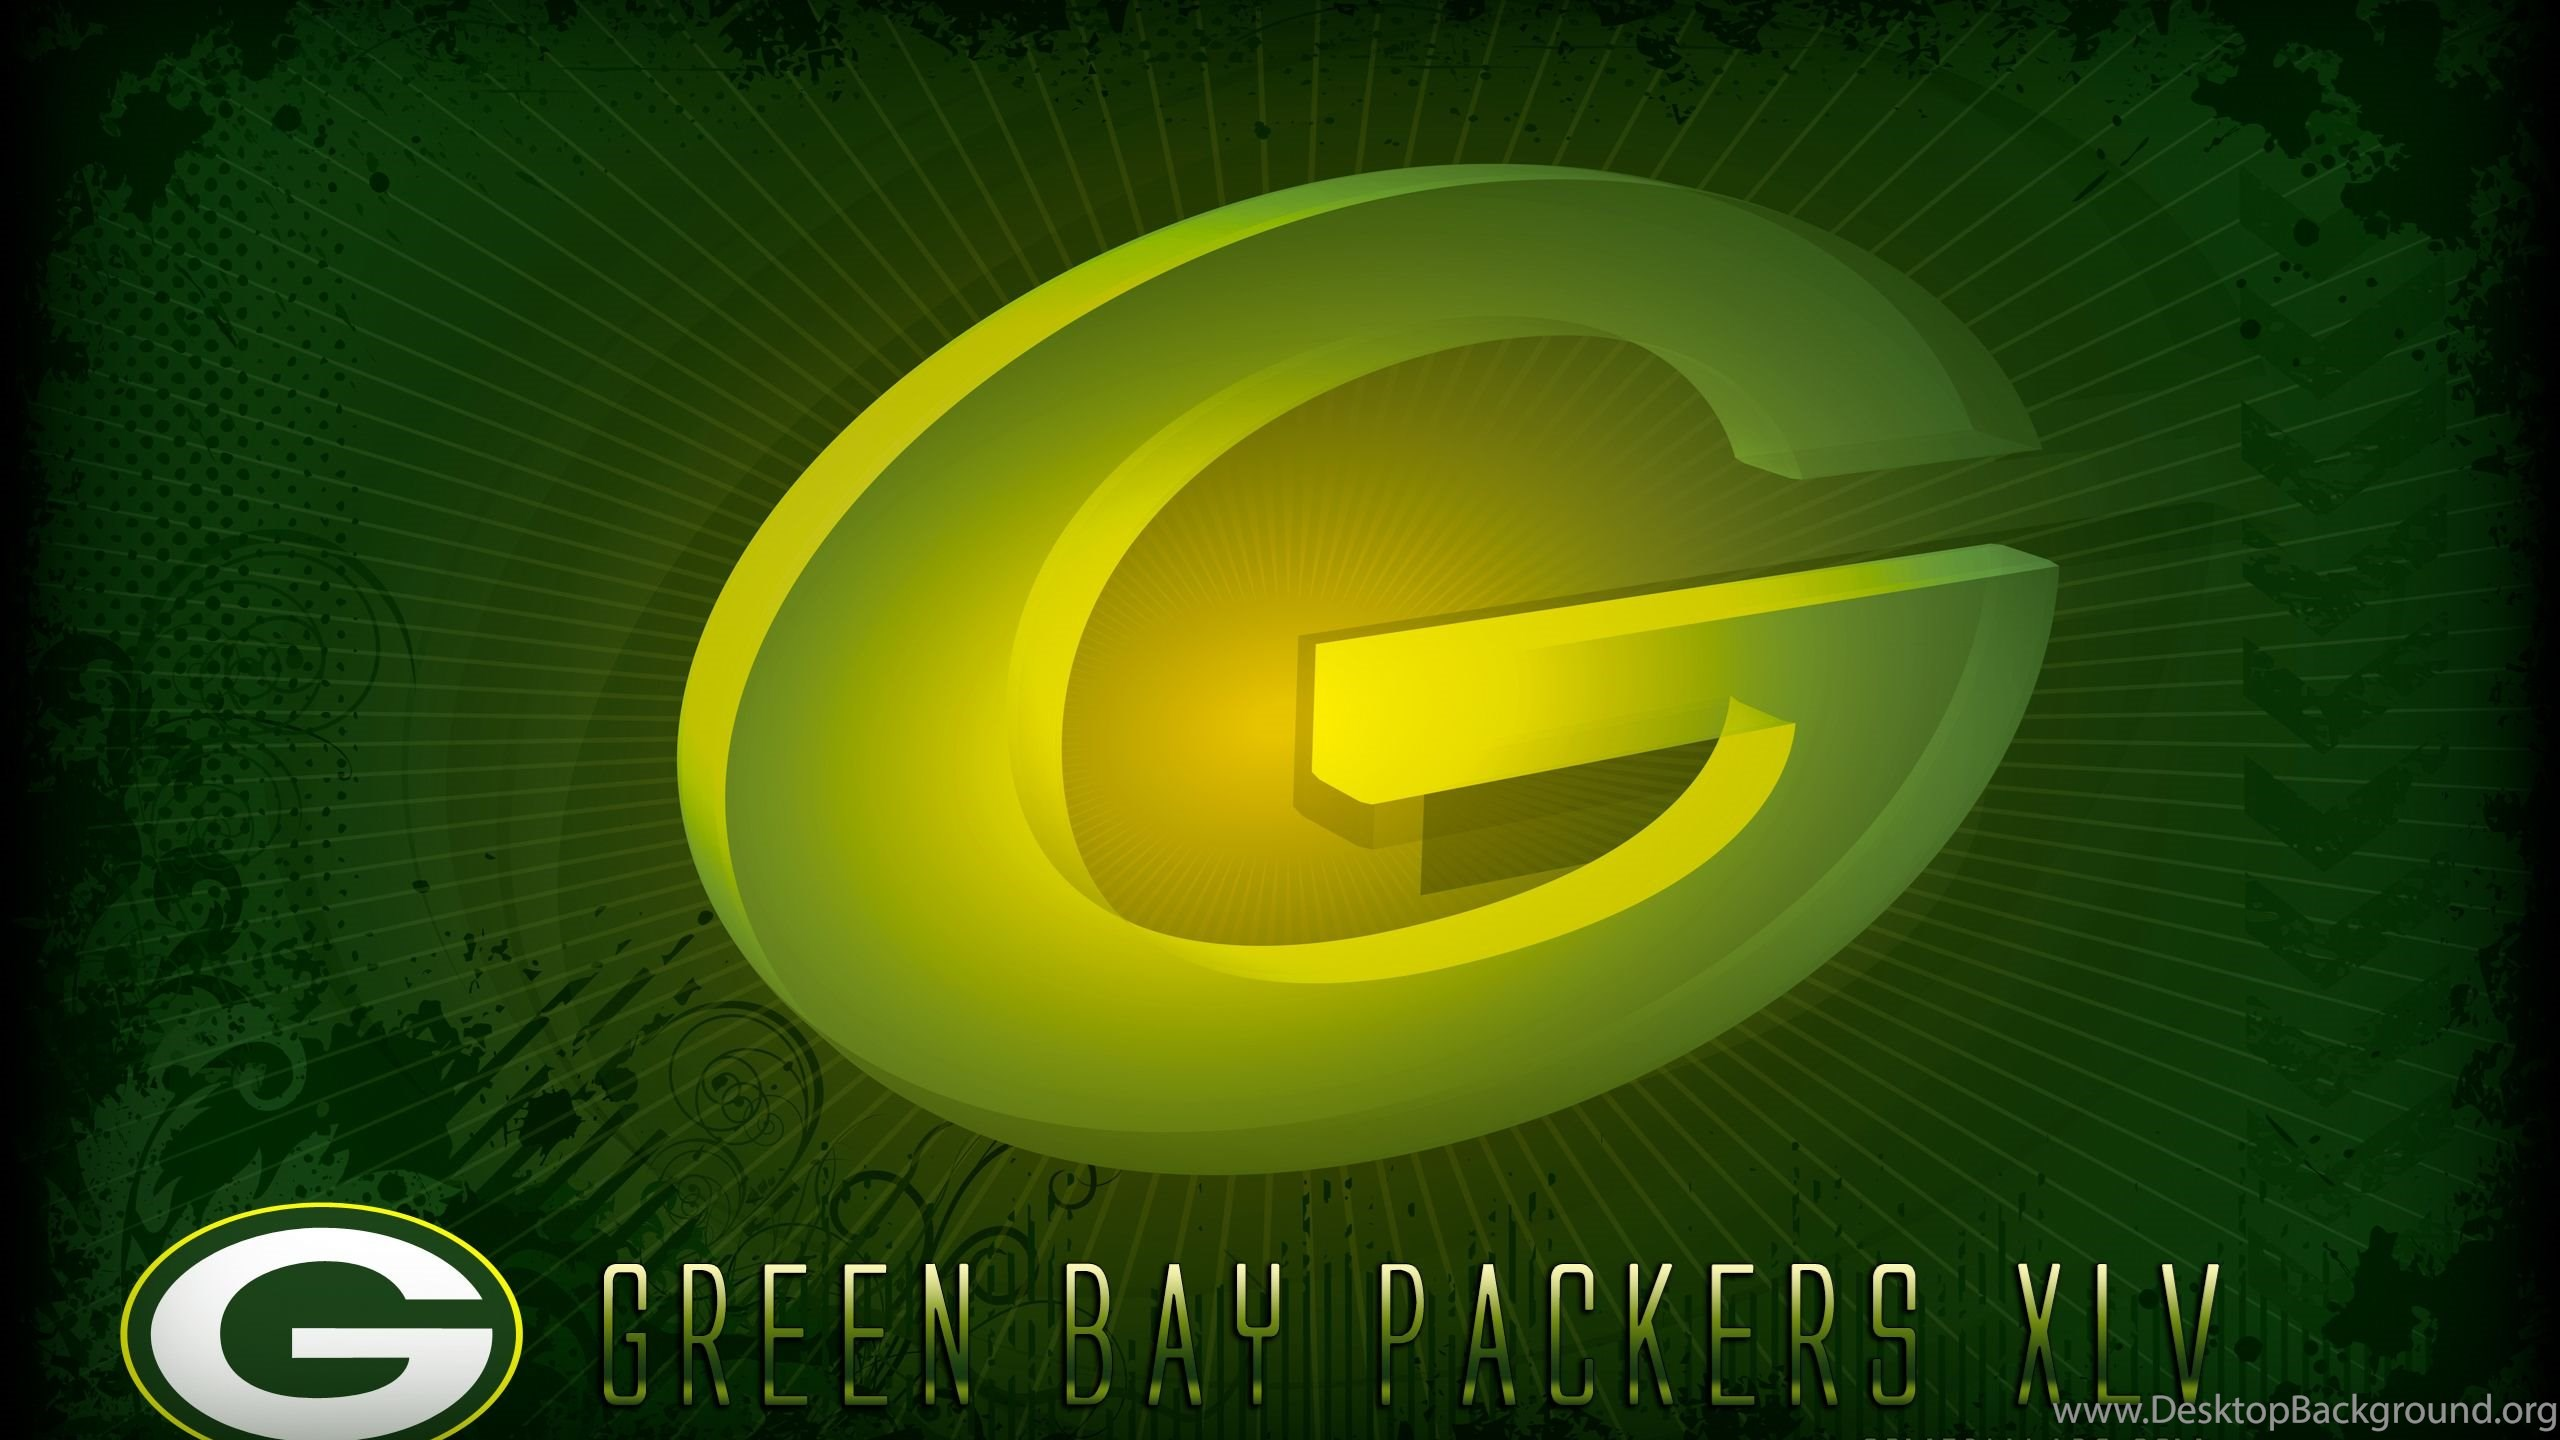 Green Bay Packers Wallpapers Super Bowl Xlv Photo Desktop Background